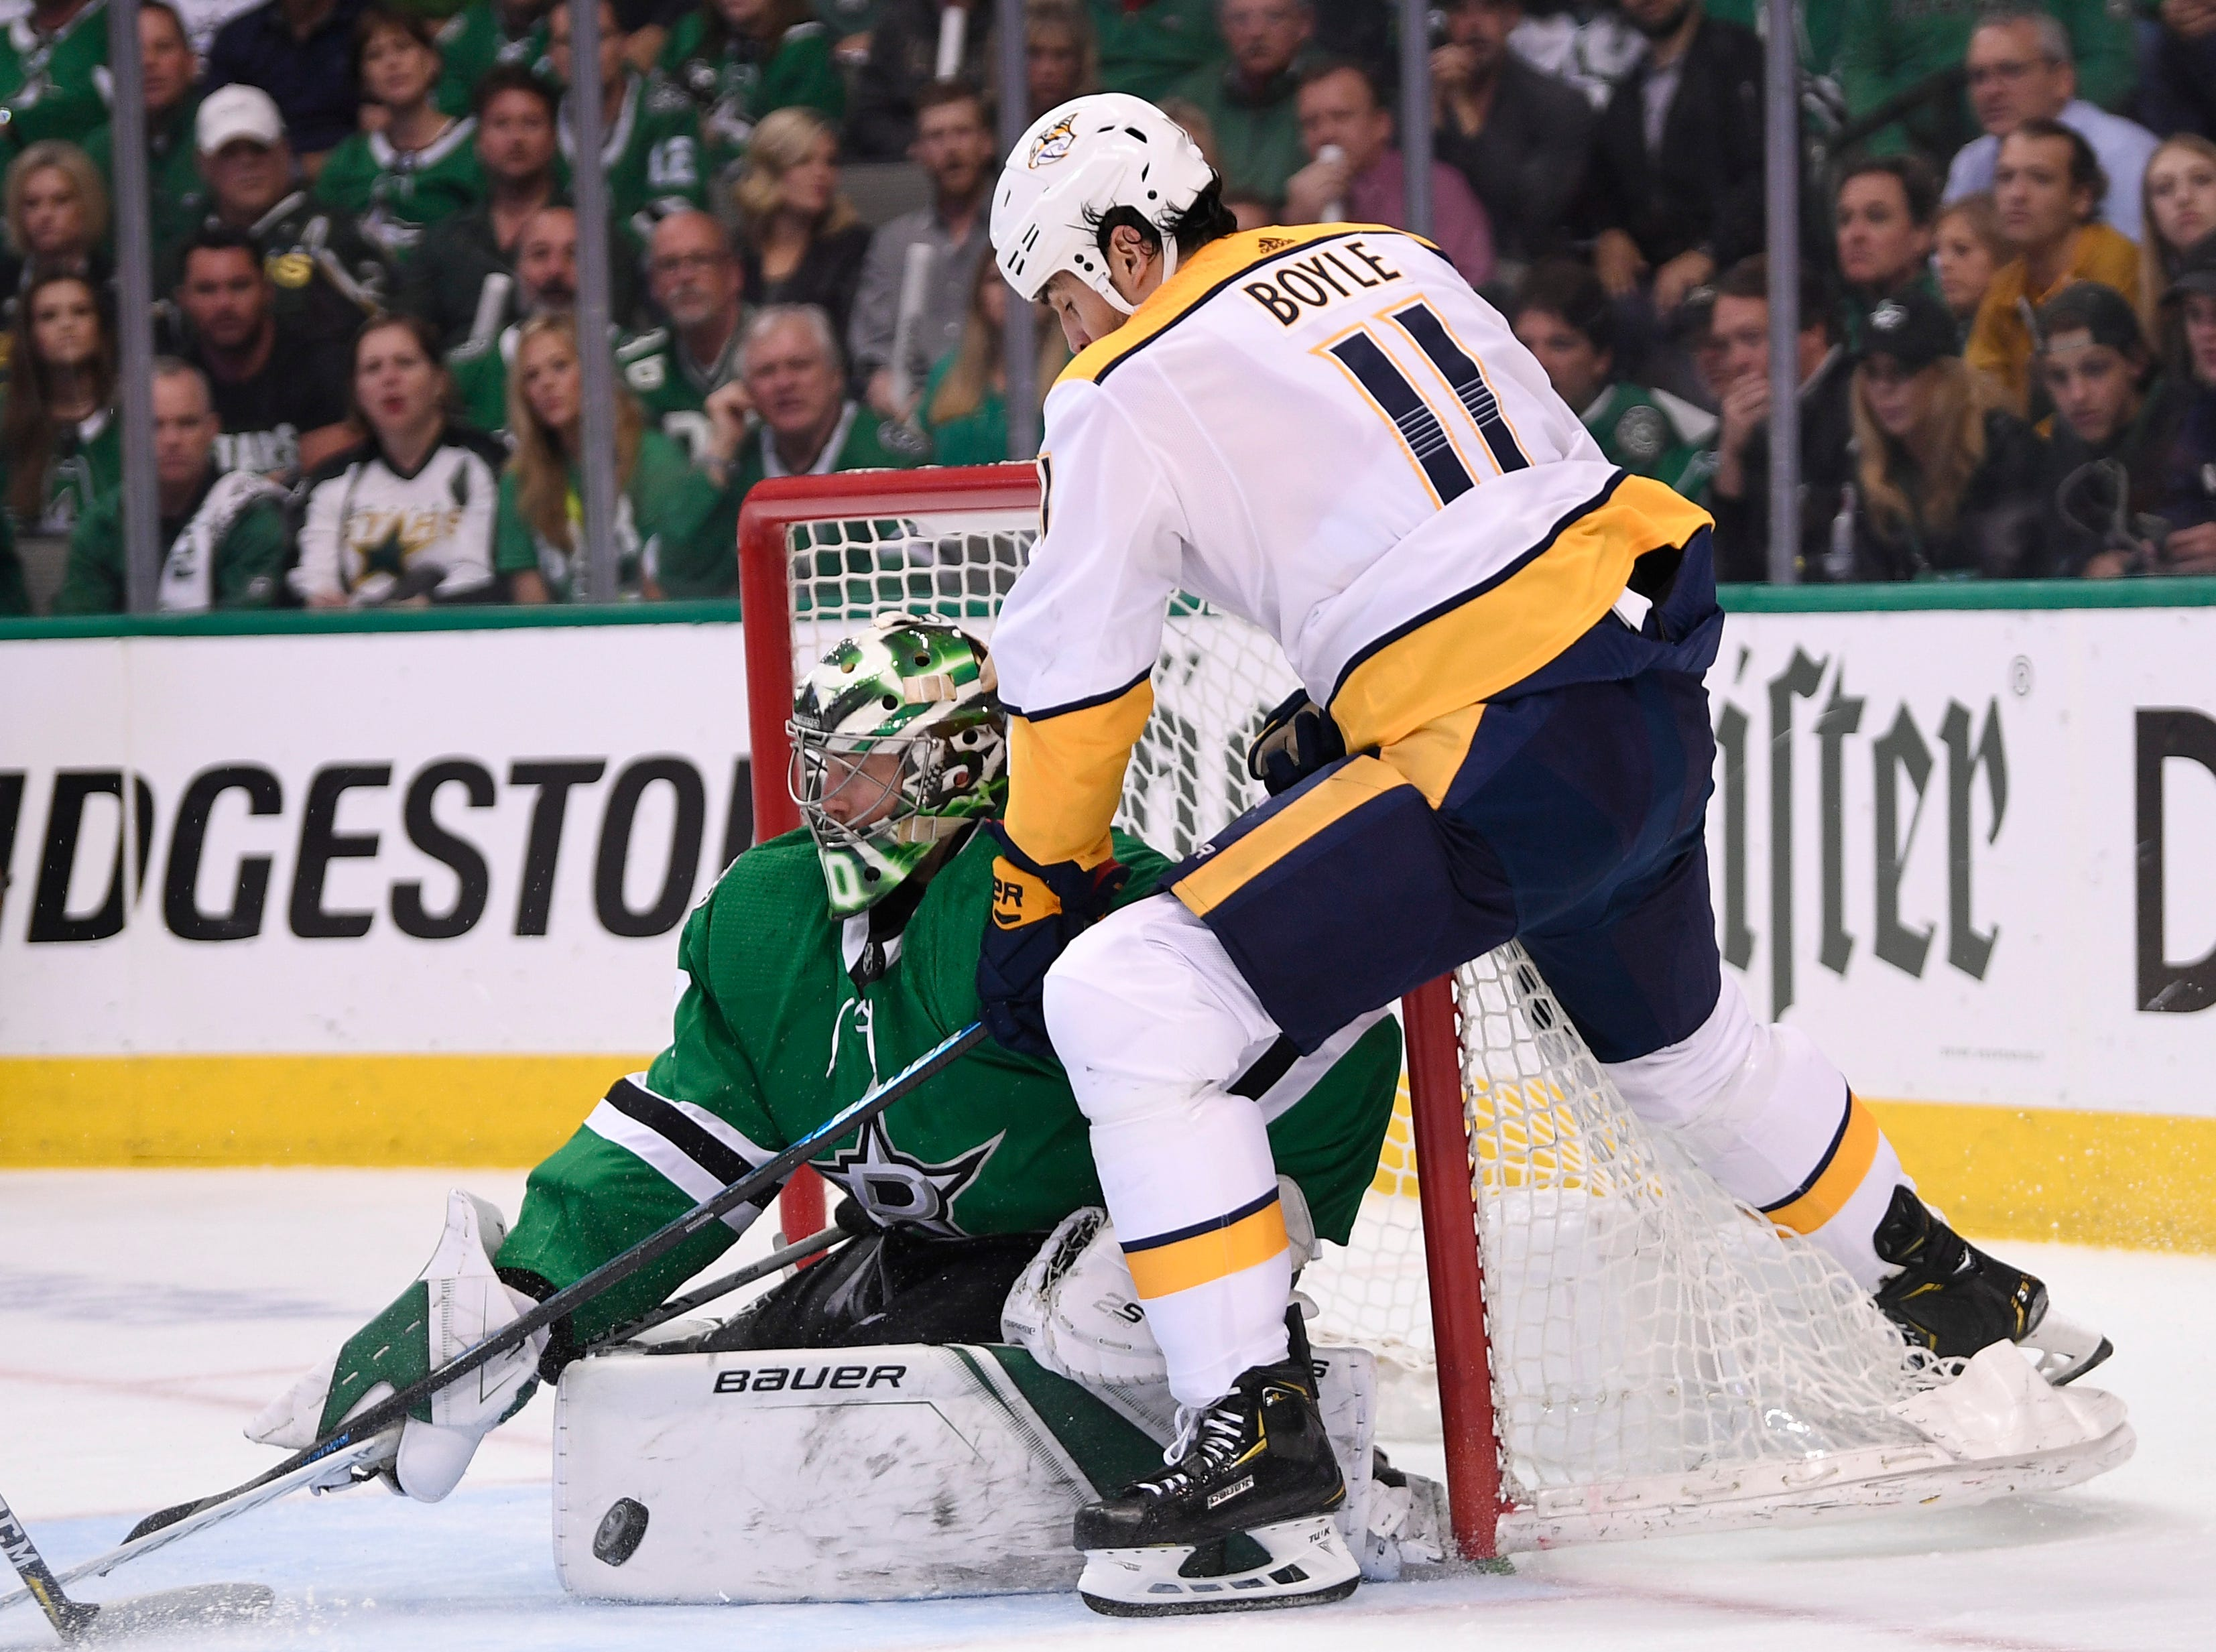 Nashville Predators center Brian Boyle (11) shoots into Dallas Stars goaltender Ben Bishop (30) during the first period of the divisional semifinal game at the American Airlines Center in Dallas, Texas, Monday, April 22, 2019.